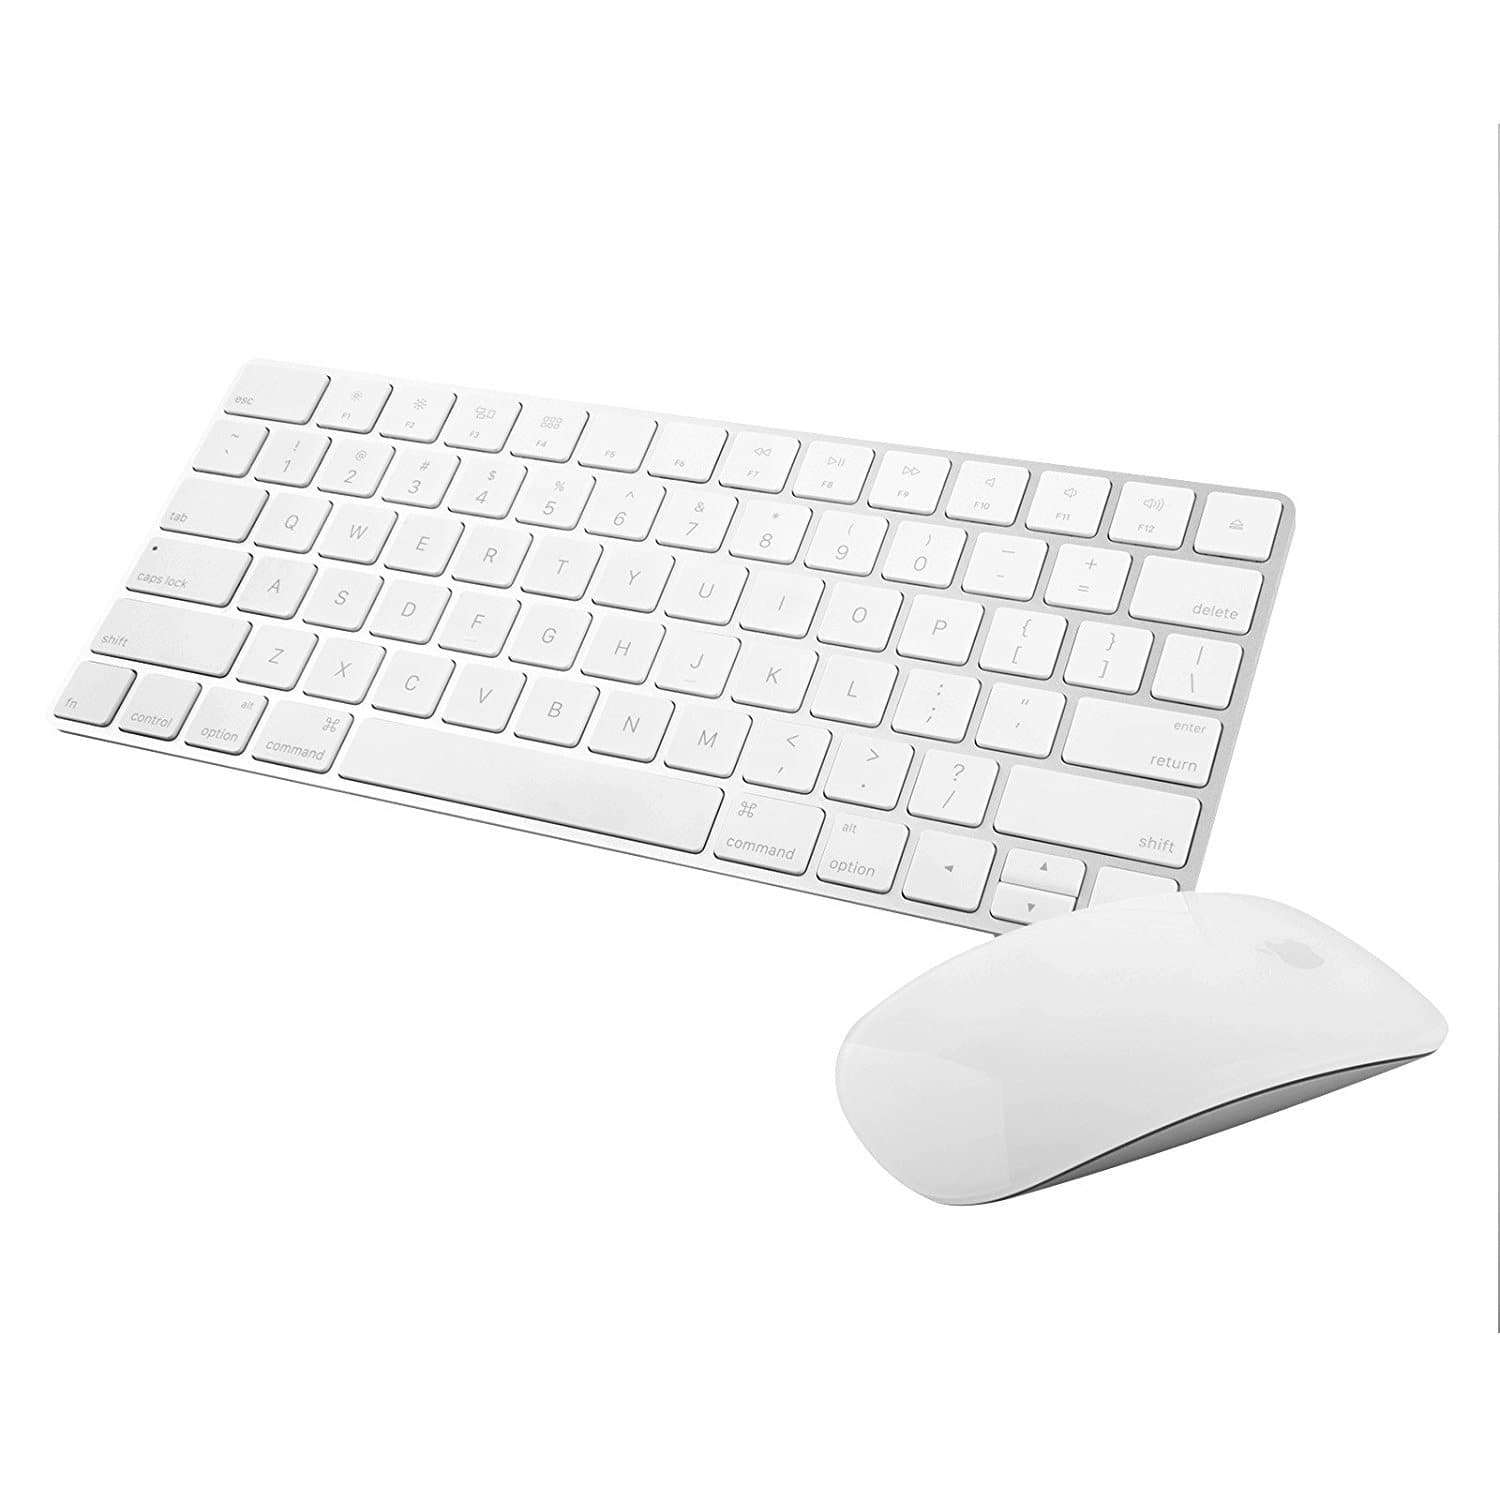 Amazon Lightning Deal: Apple Wireless Magic Keyboard